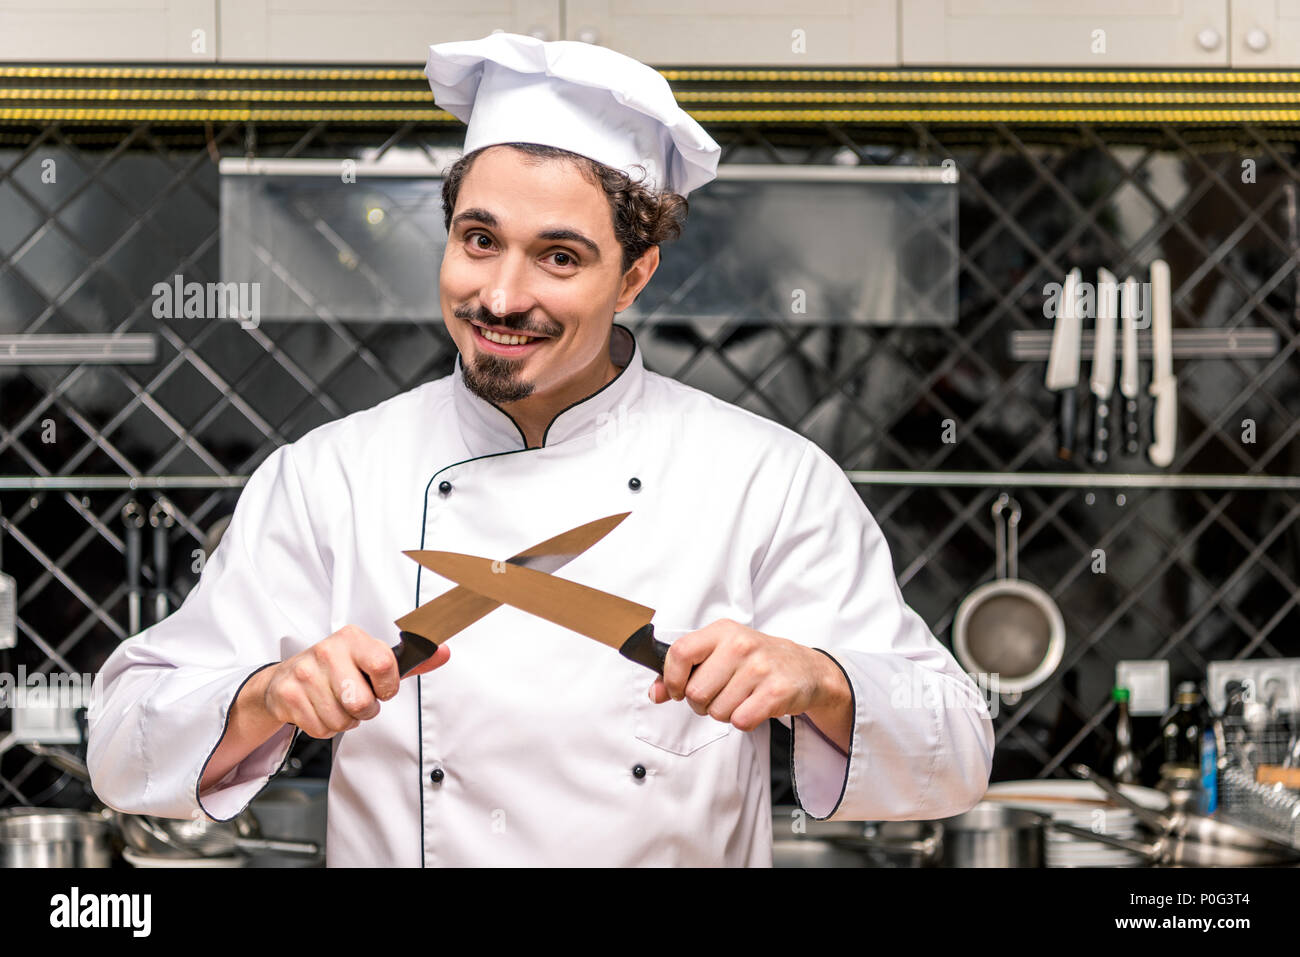 smiling chef standing with crossed knifes - Stock Image